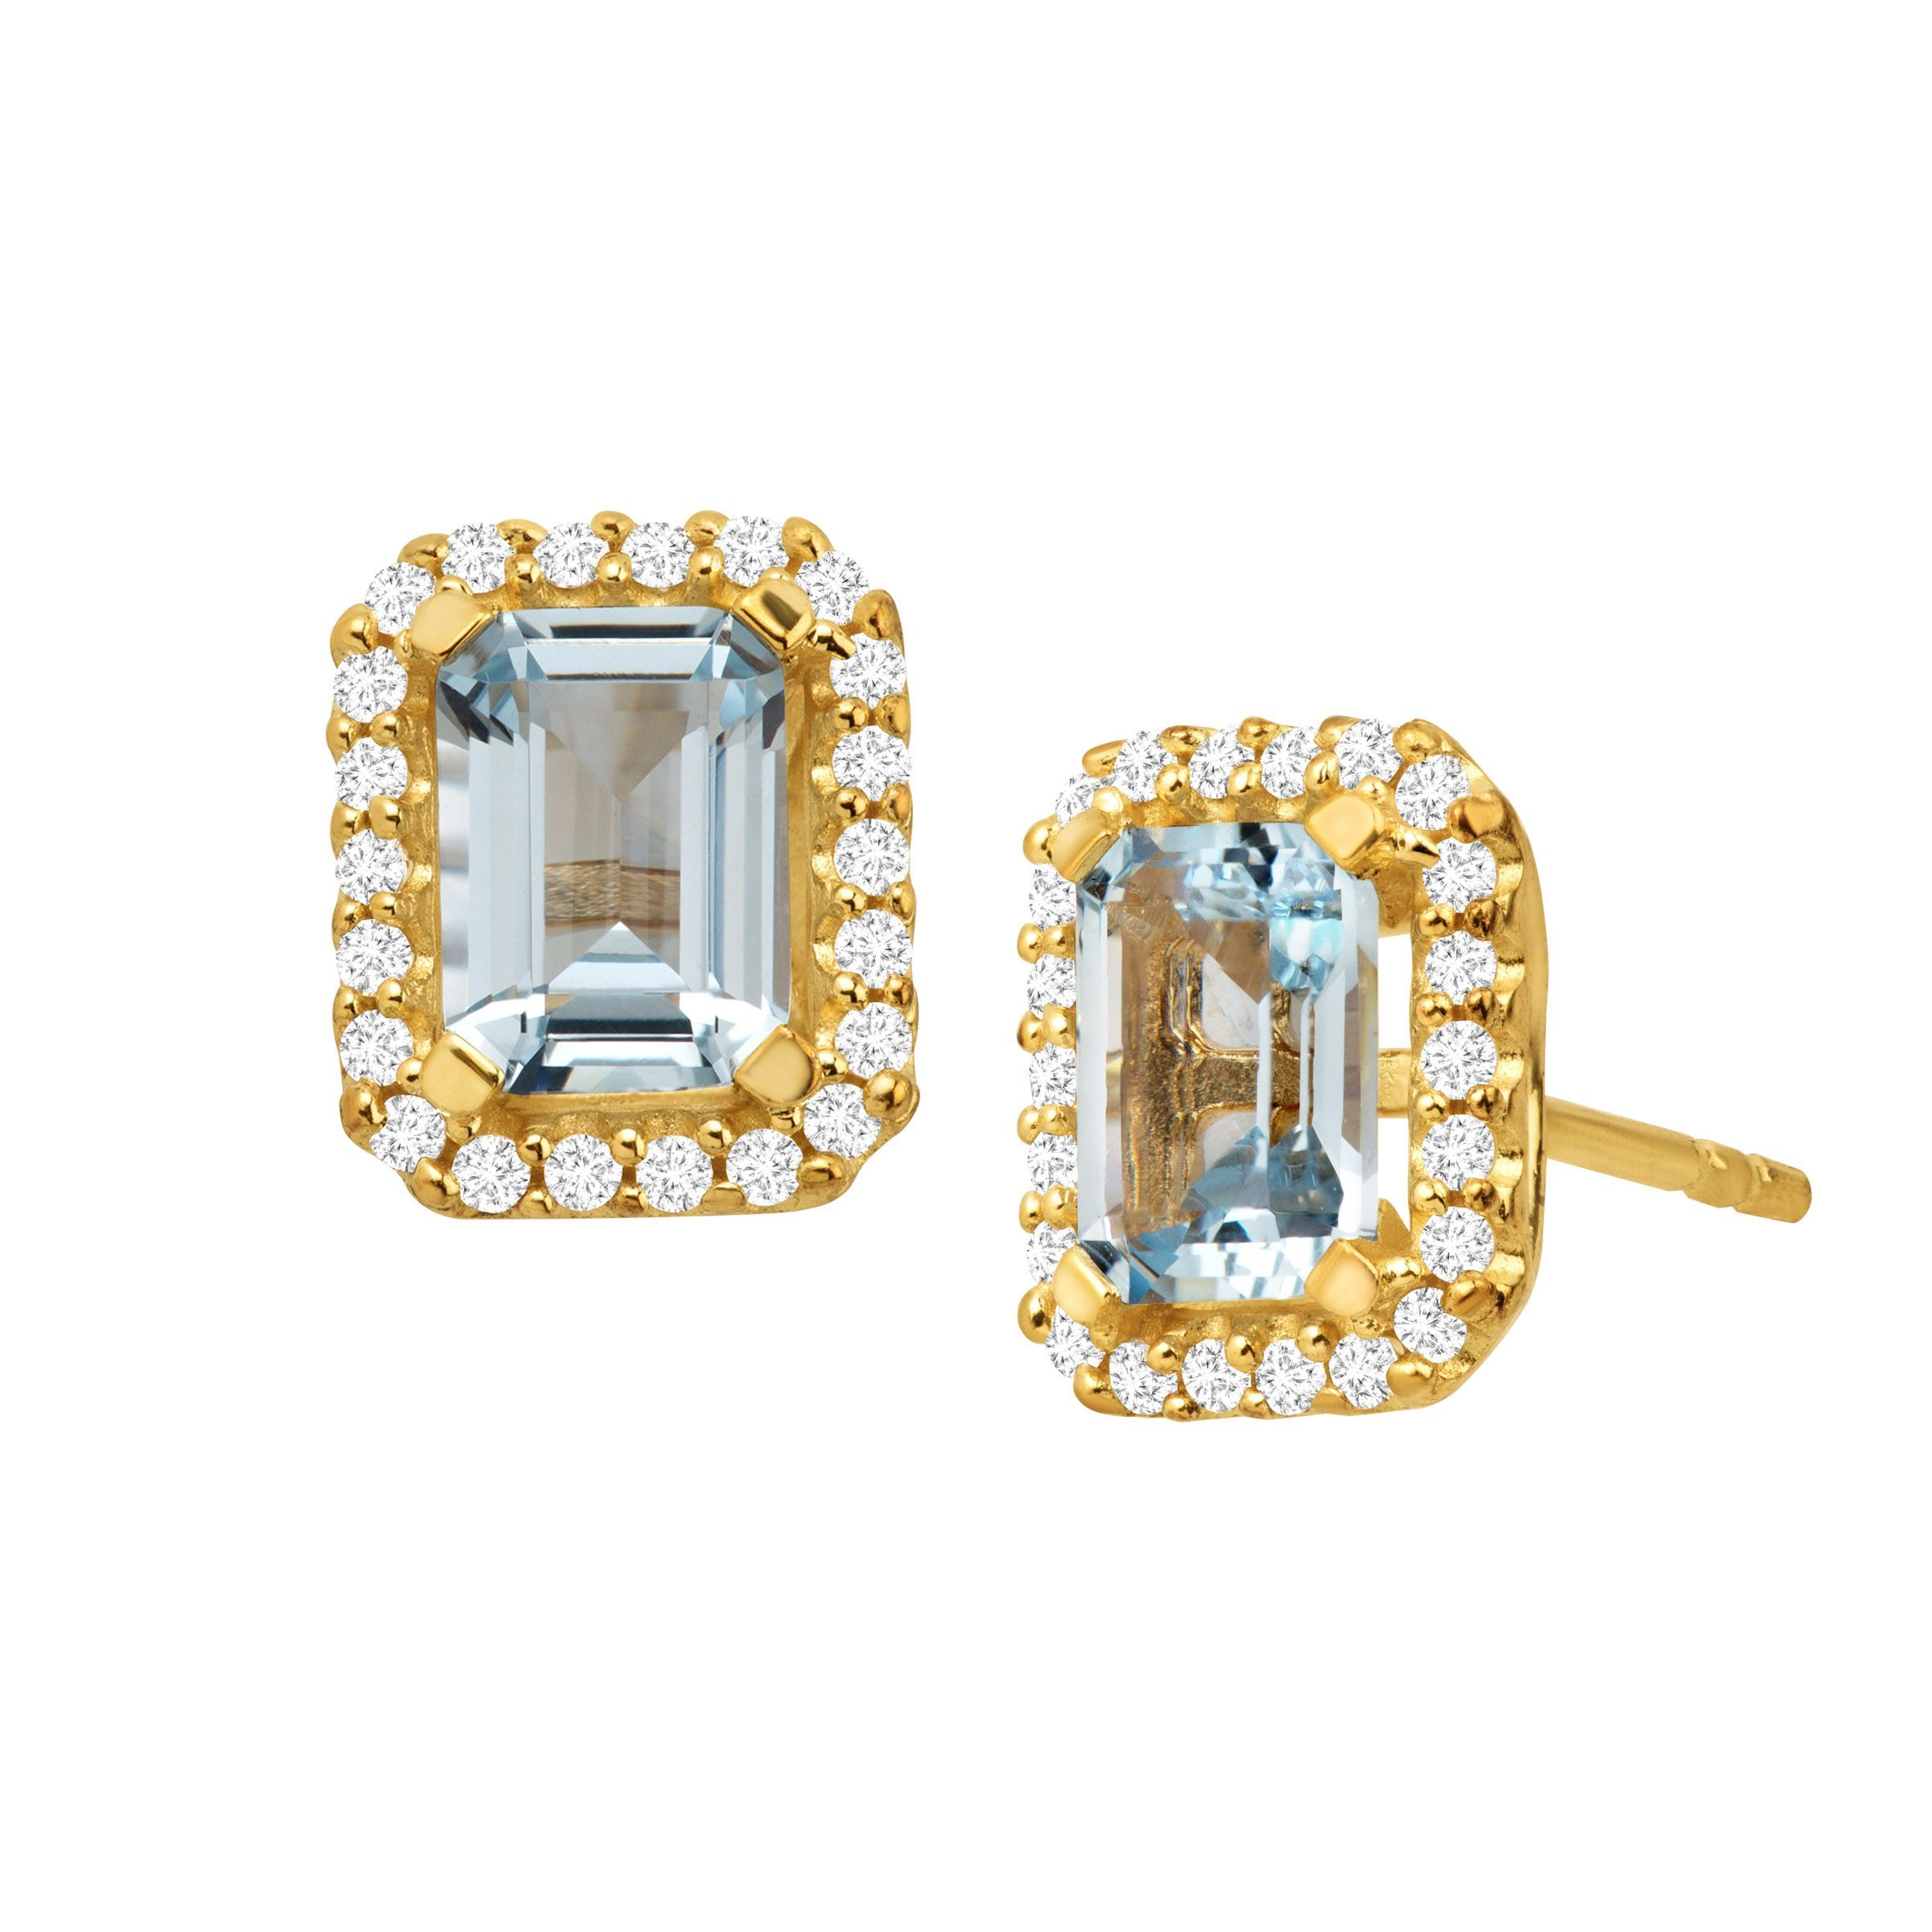 1 2 Ct Simulated Aquamarine Earrings With Cubic Zirconia 14k Gold Over Silver